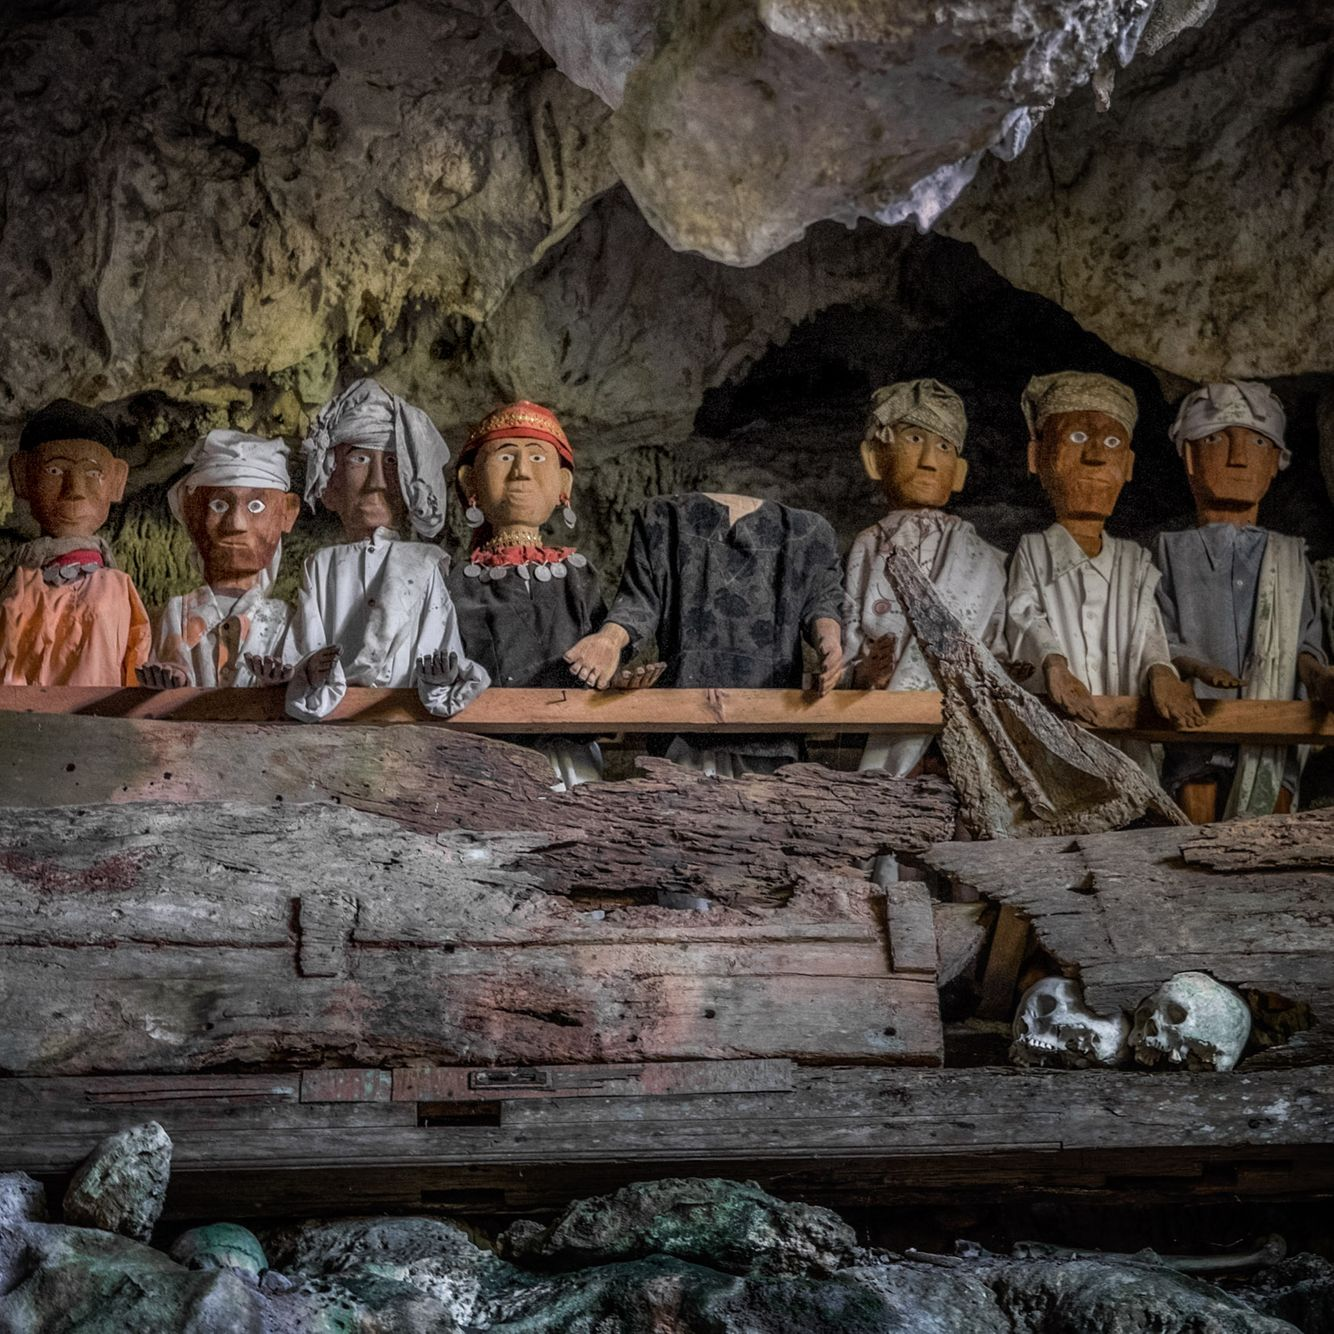 INDONESIA:  The Living and the Dead in Tana Toraja